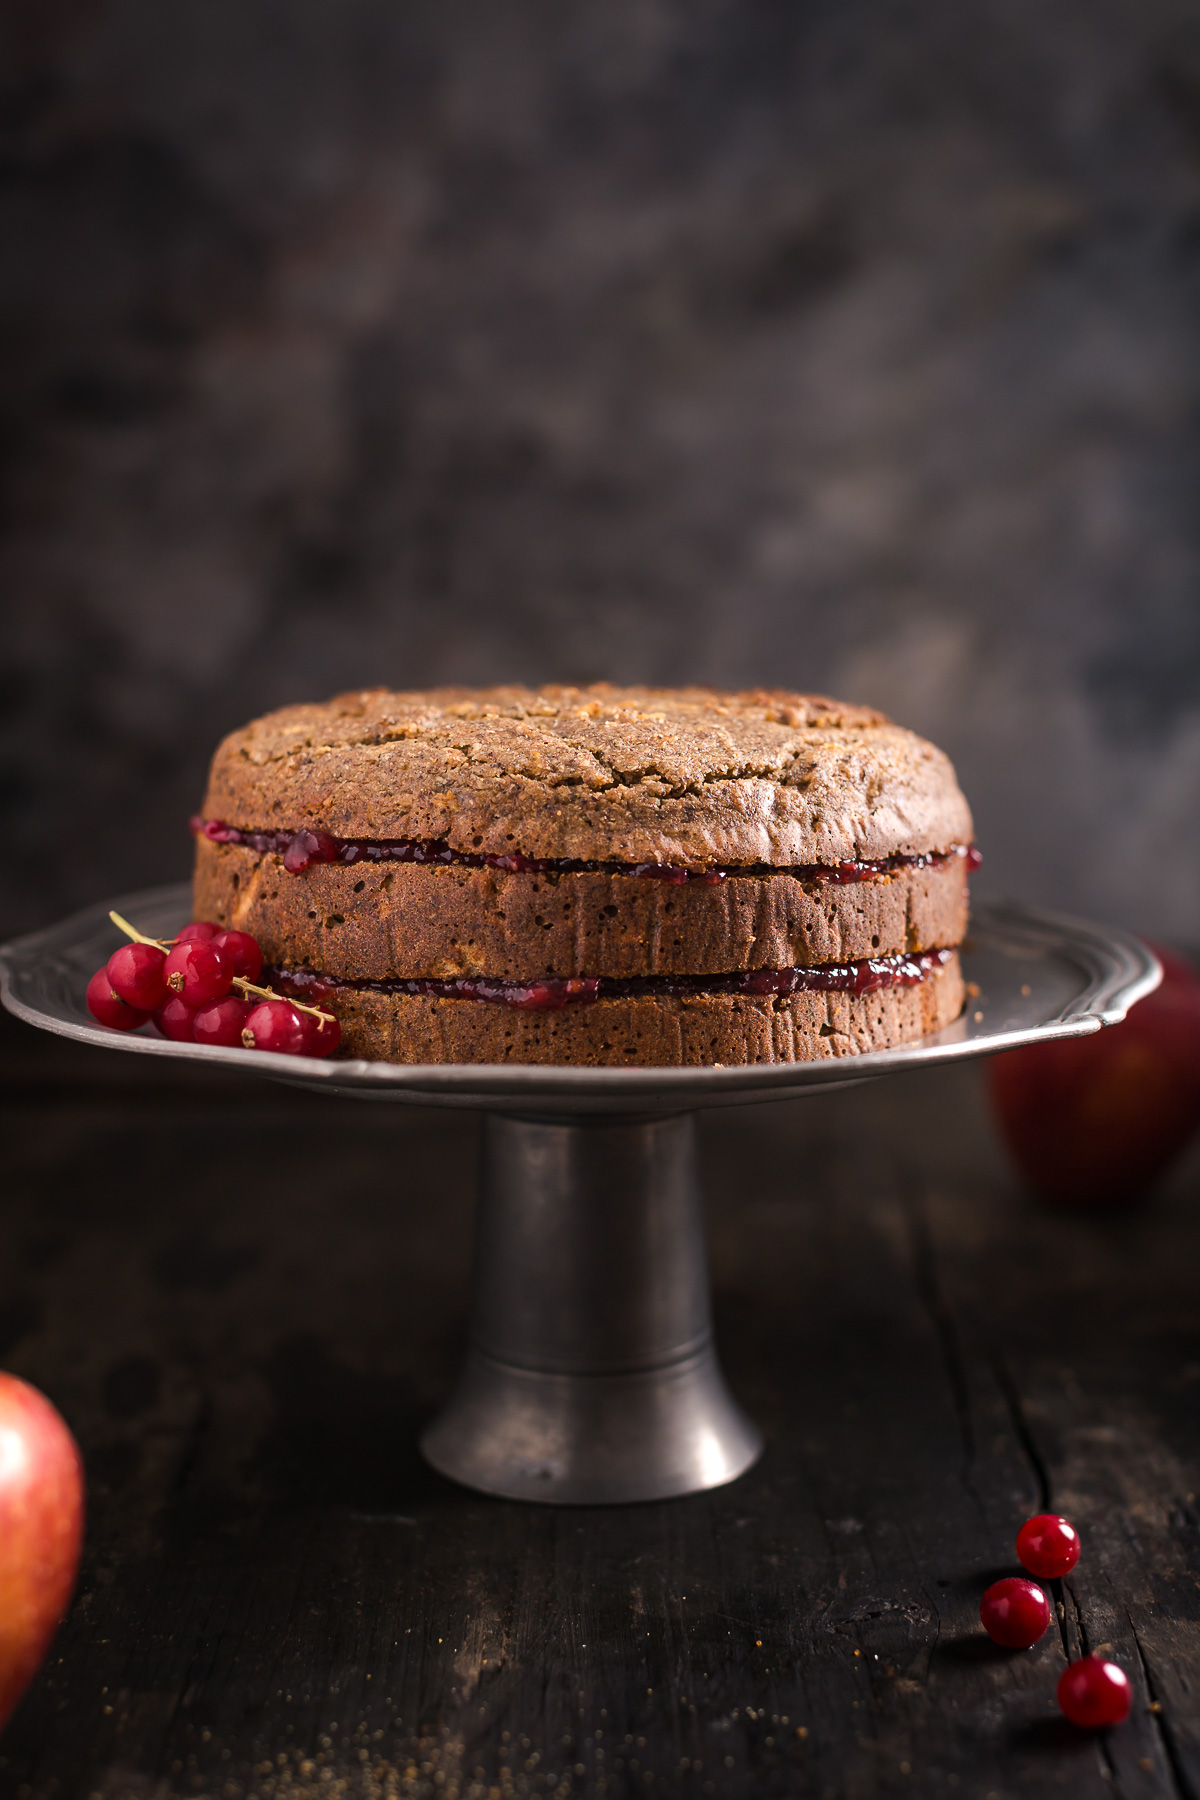 ricetta TORTA di GRANO SARACENO VEGAN SENZA GLUTINE altoatesina con marmellata di mirtilli rossi mandorle e mele senza burro senza uova - BUCHWEIZENTORTE Schwarzplententorte #vegan #glutenfree BUCKWHEAT APPLE CAKE with ALMONDS #apple #cake